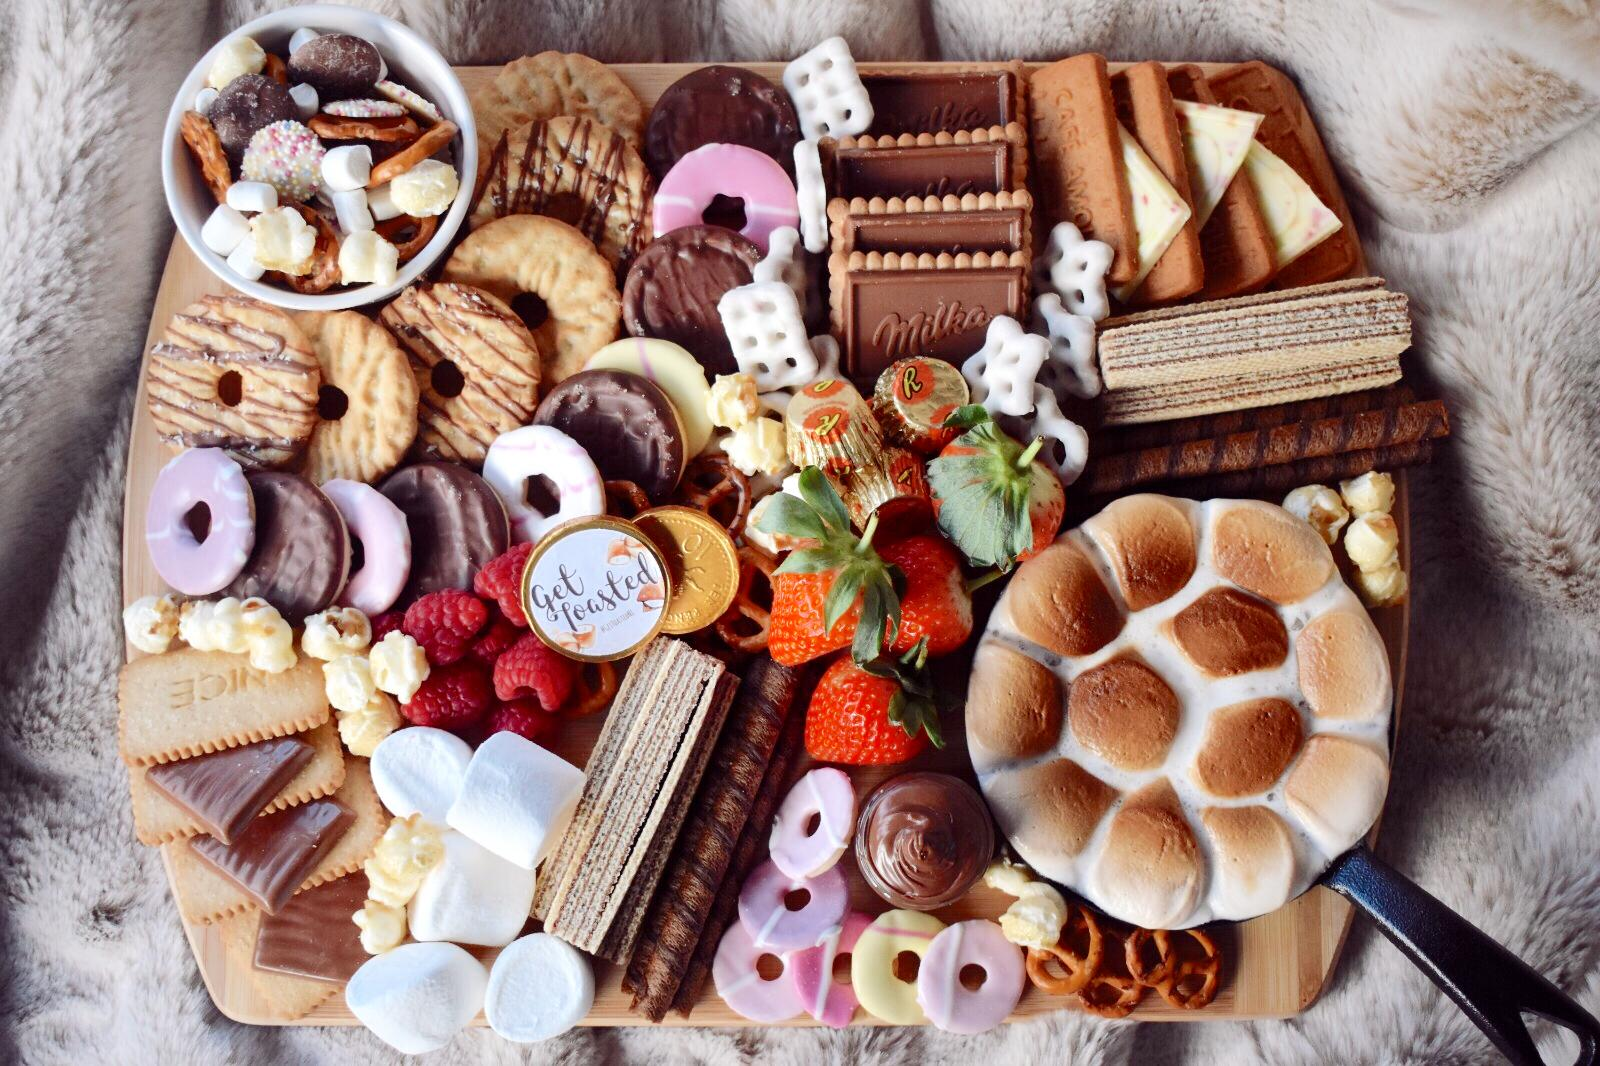 Full smore box including marshmallows, biscuits and chocolate.